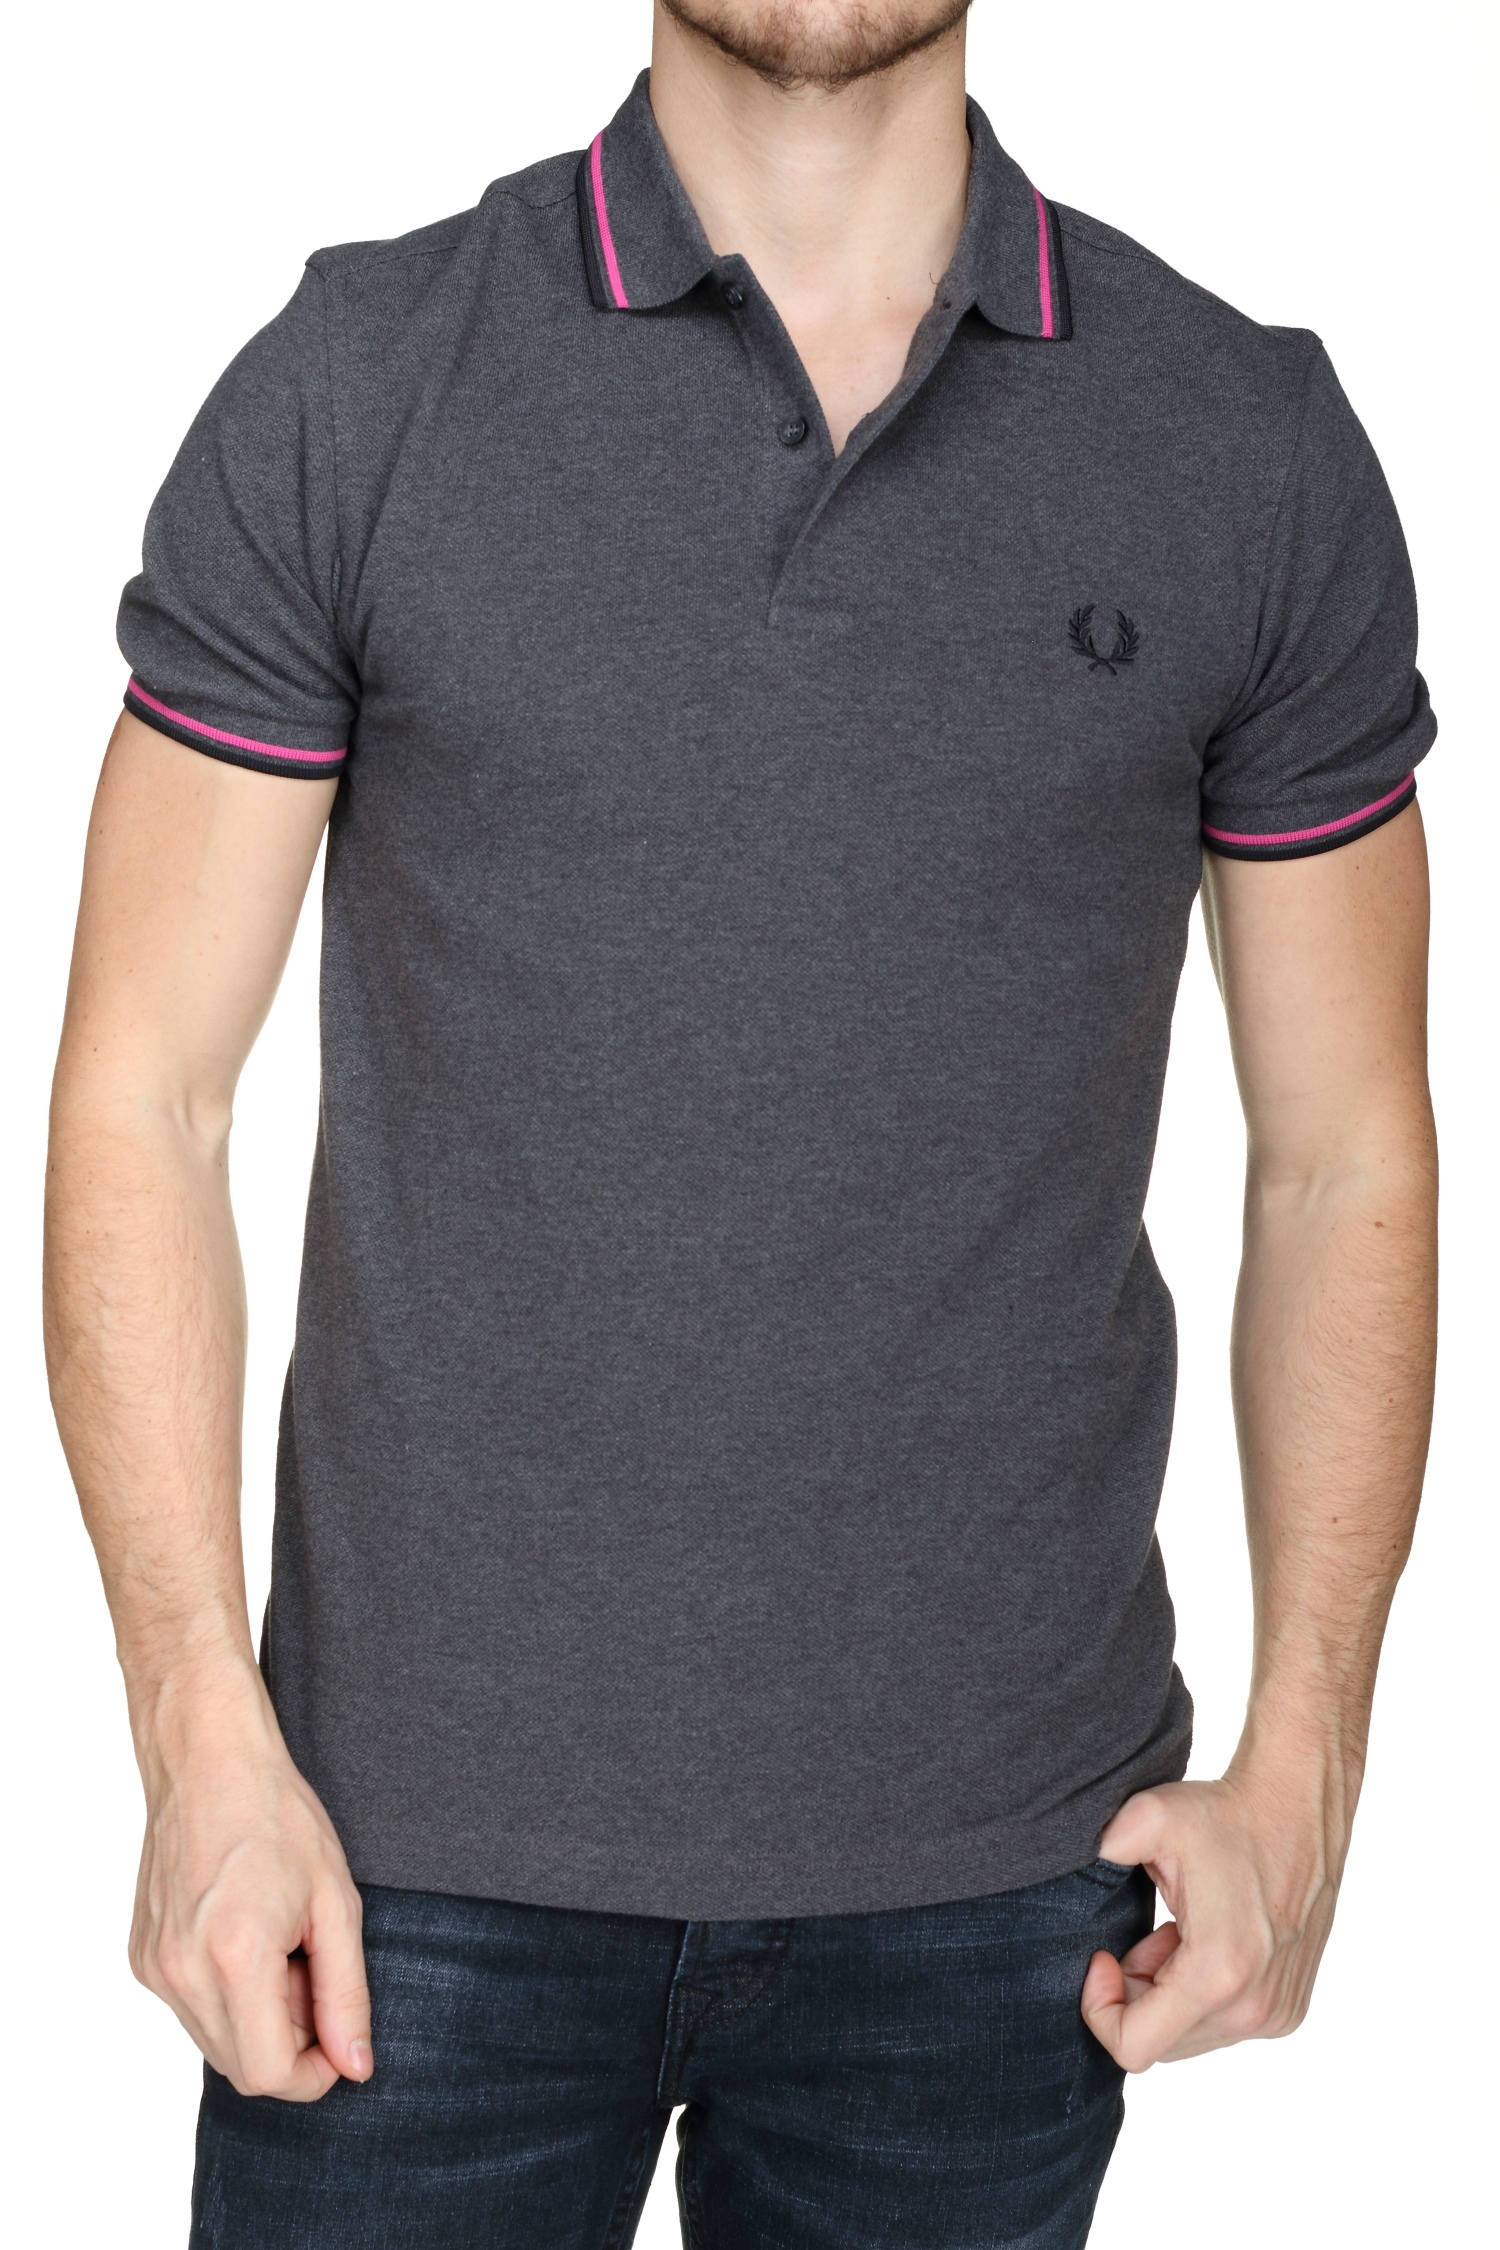 http://www.leadermode.com/182335/fred-perry-fpmm3600-829-graphite-marl.jpg